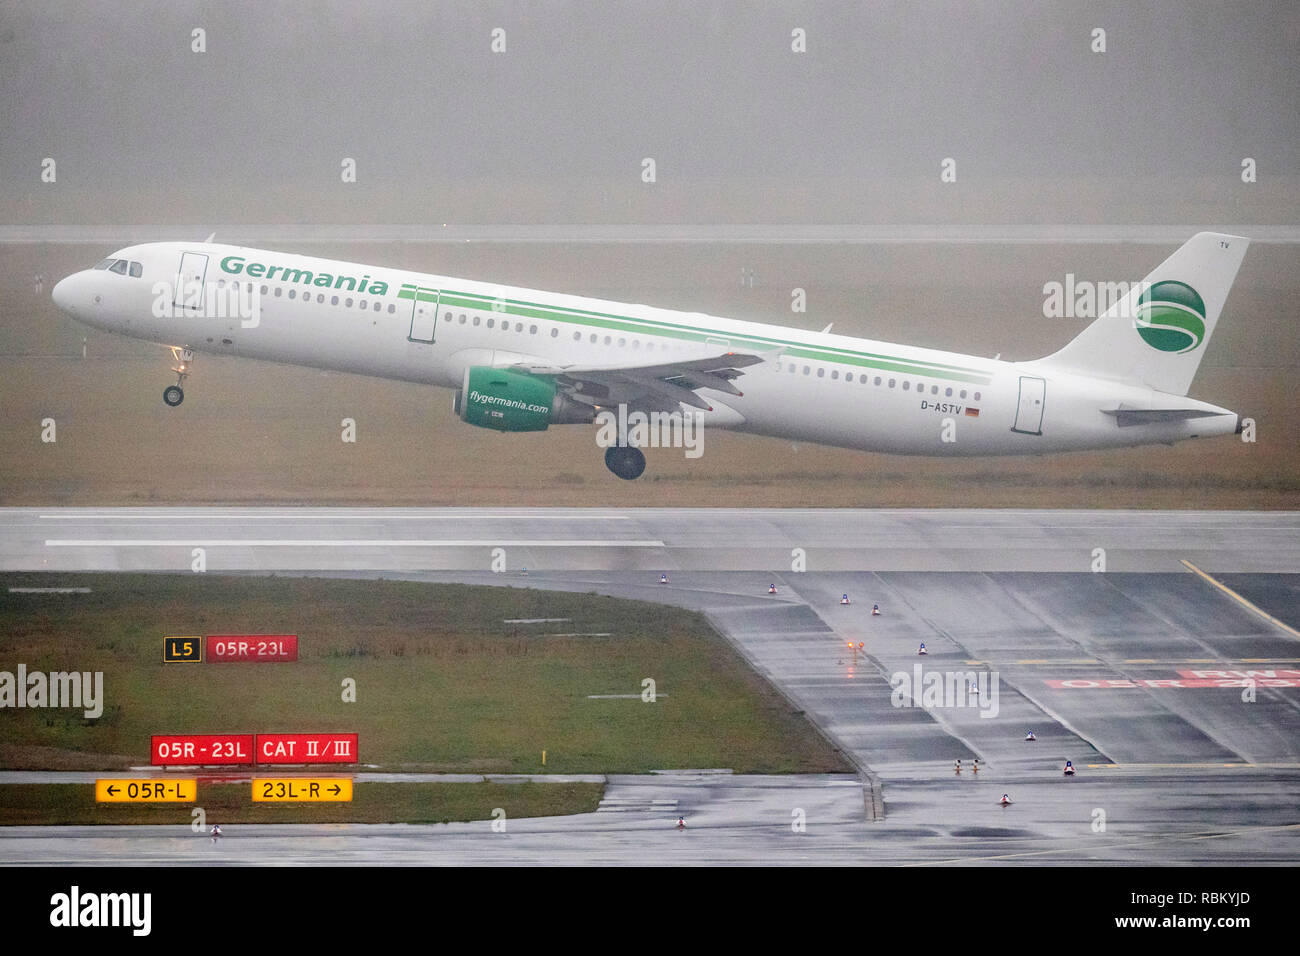 11 January 2019, North Rhine-Westphalia, Düsseldorf: An aircraft of the airline Germania takes off at Düsseldorf Airport in Regen. Germania had confirmed financial difficulties on 08.01.2019. As a result, the airline is reviewing several financing options to secure short-term liquidity needs. However, there should be no restrictions on flight operations. Photo: Marcel Kusch/dpa - Stock Image